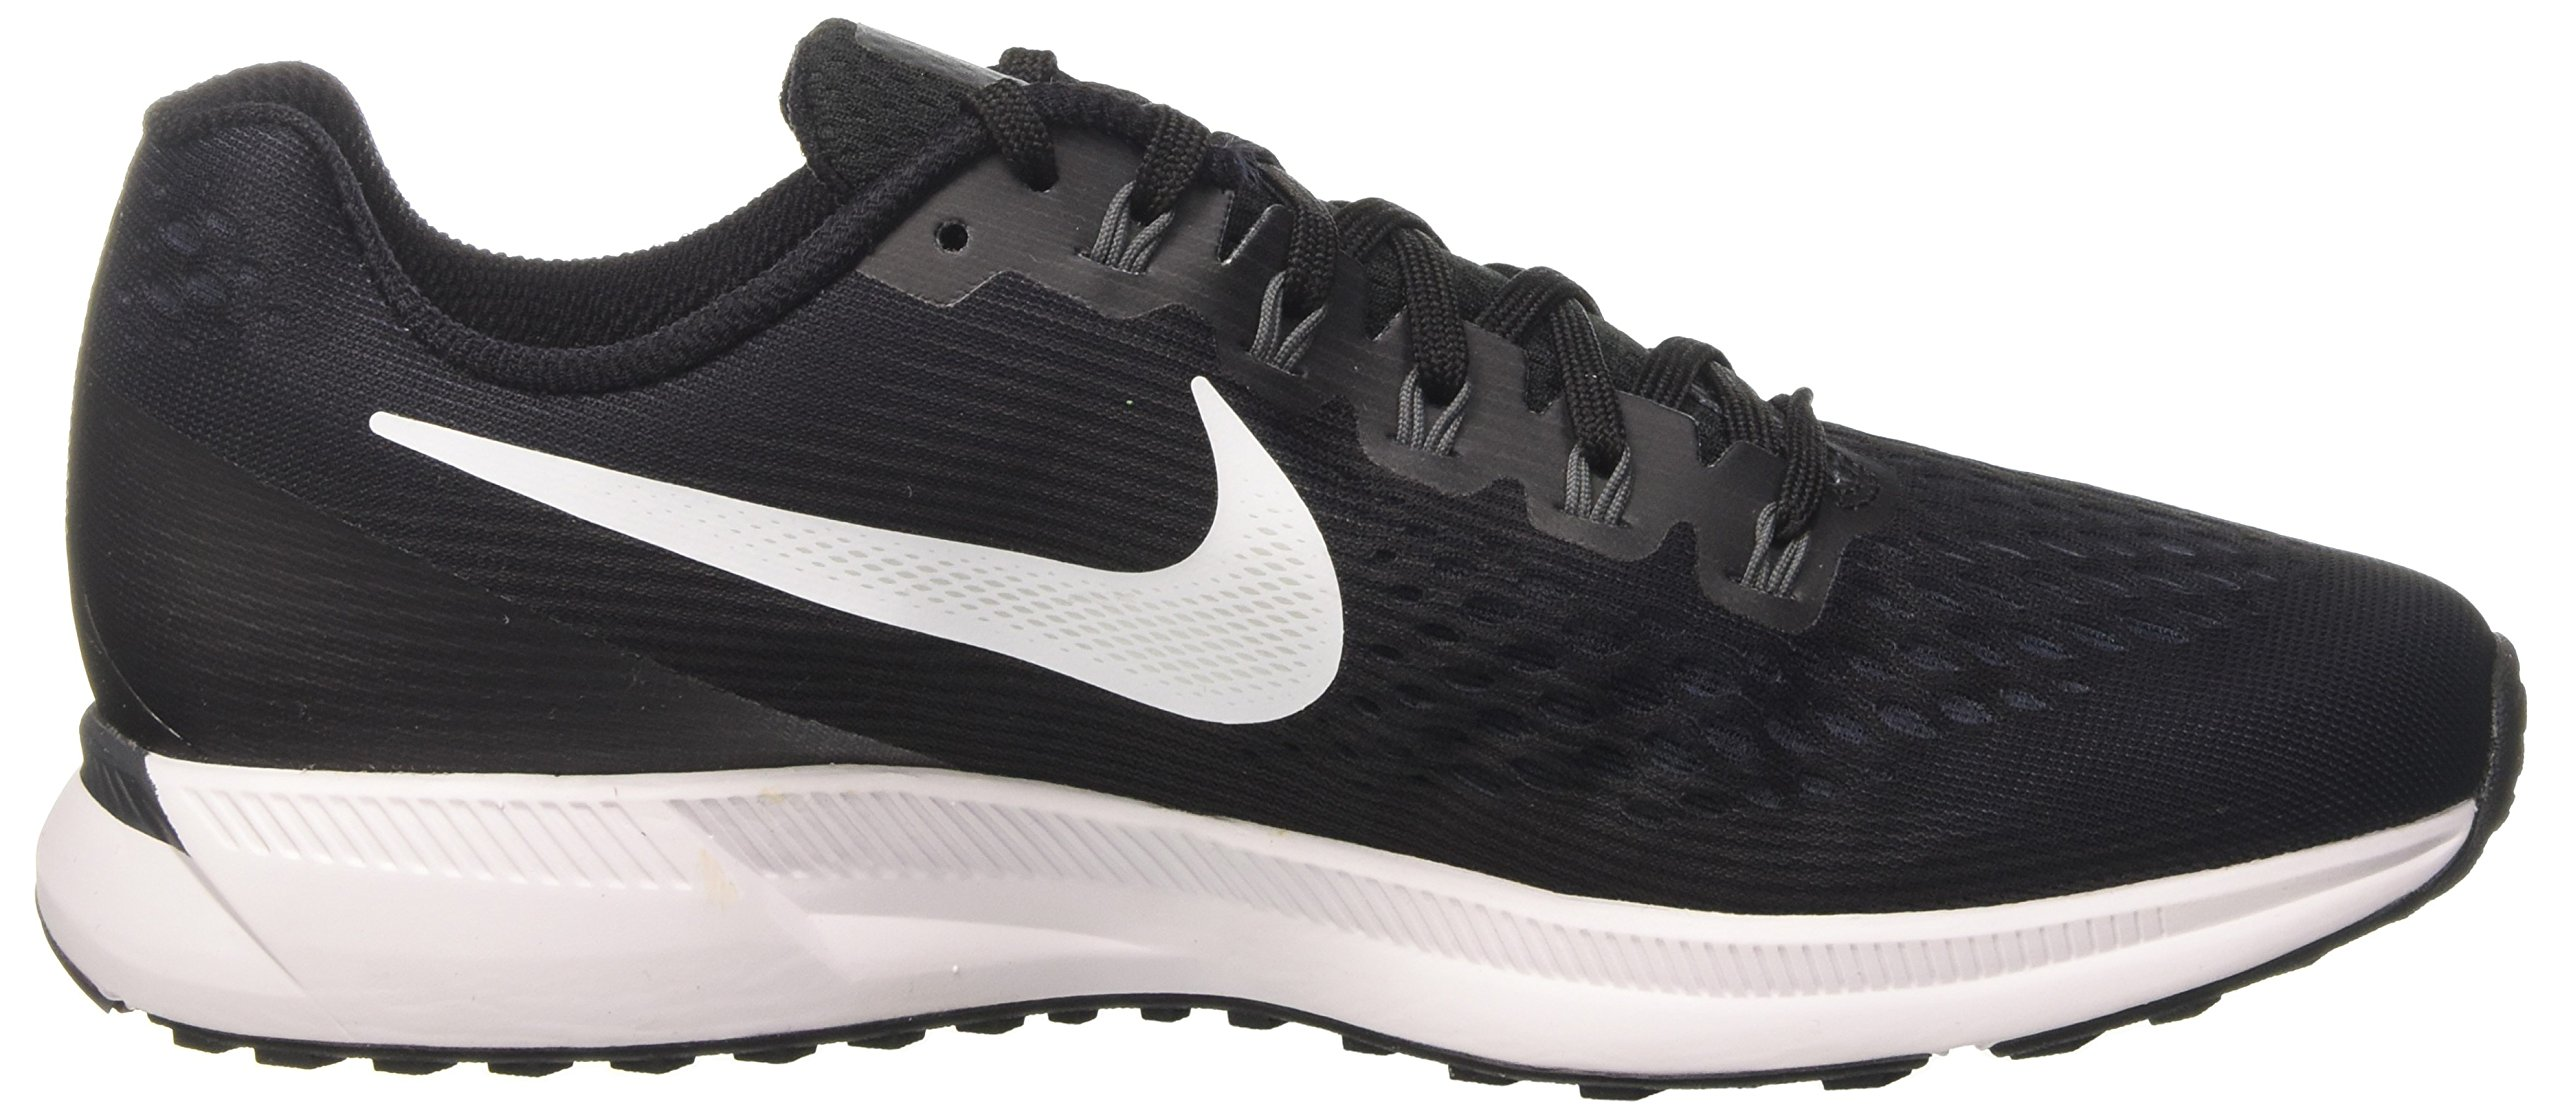 NIKE Mens Air Zoom Pegasus 34 (9.5, Black/Dark Grey/Anthracite/White)